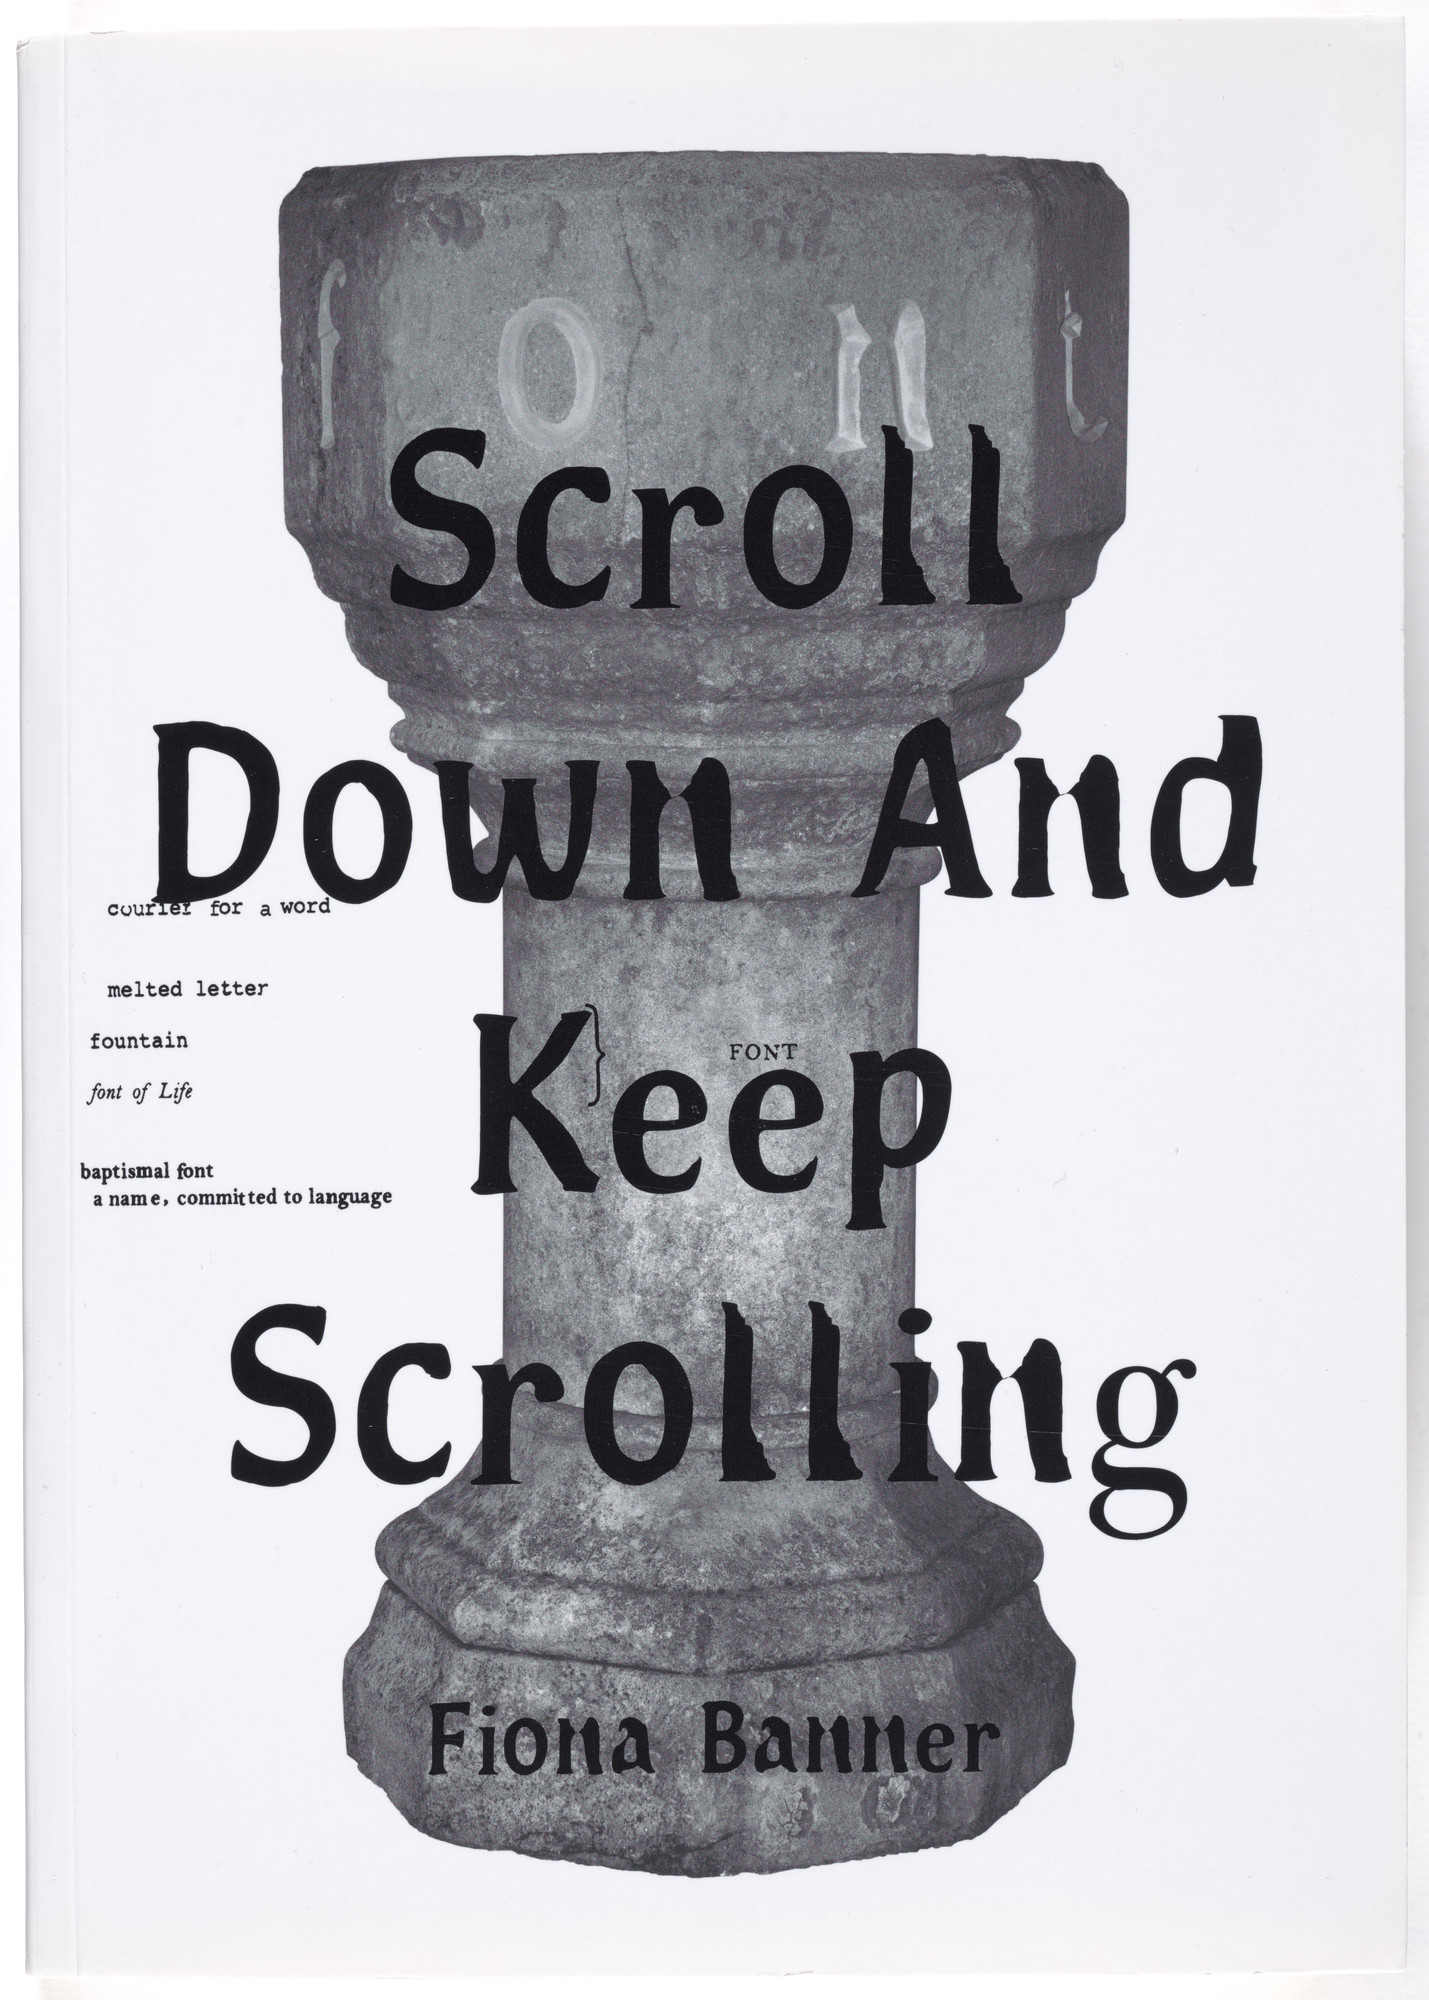 fiona banner scroll down and keep scrolling 2015 moma